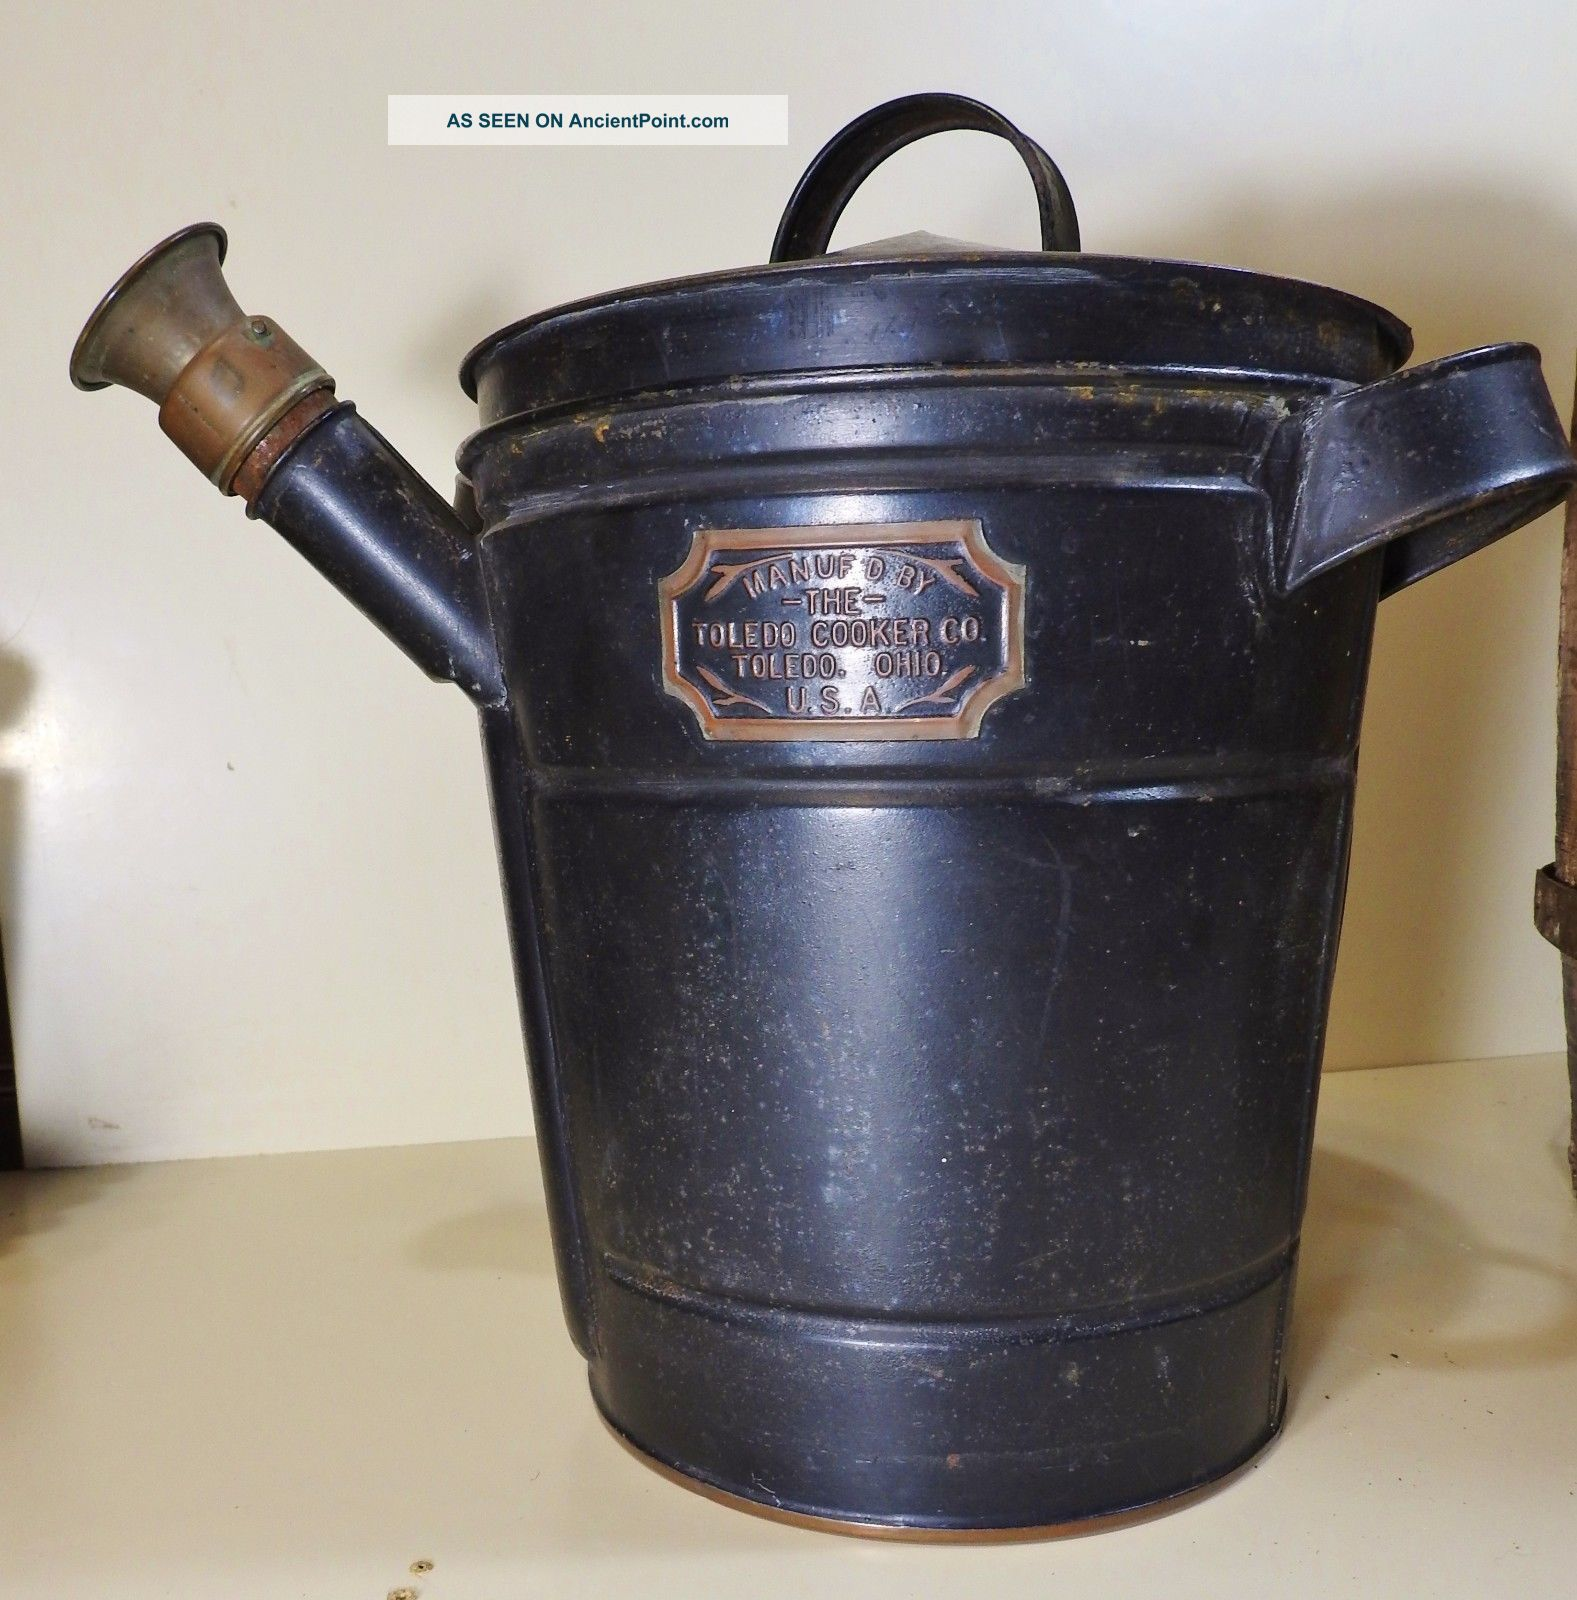 Rare Antique Toledo Cooker Steamer Pot For Clam Lobster Seafood Decor Hearth Ware photo